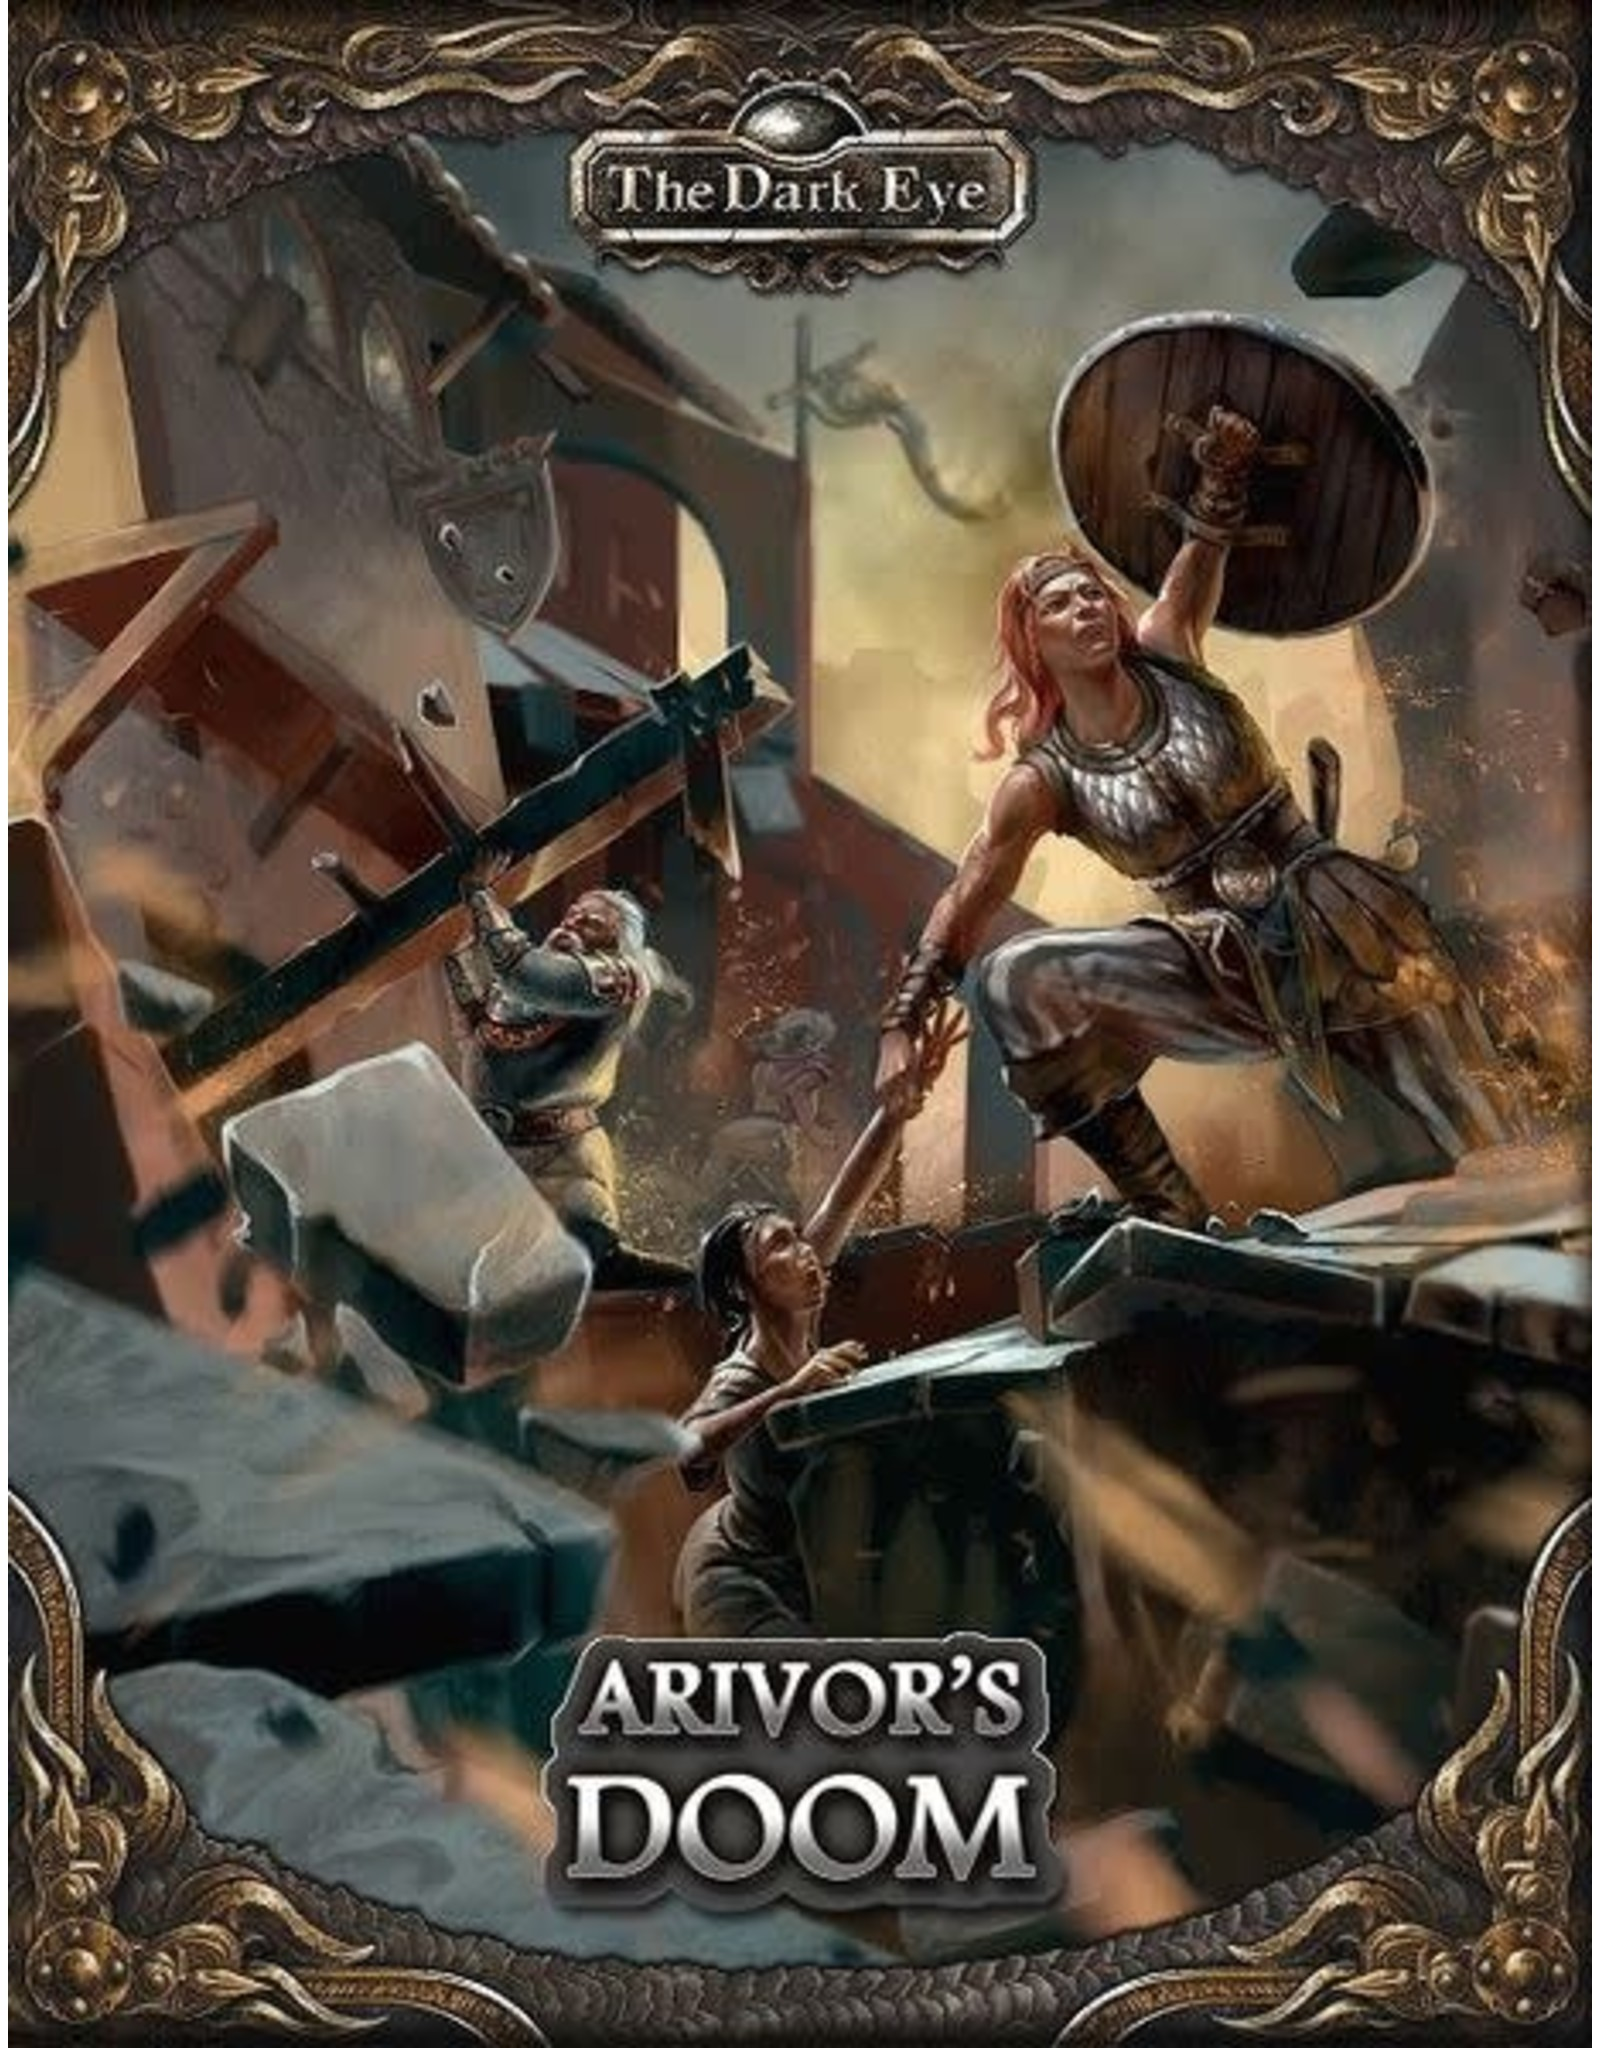 Ulisses-Spiele The Dark Eye 5E: Arivor's Doom